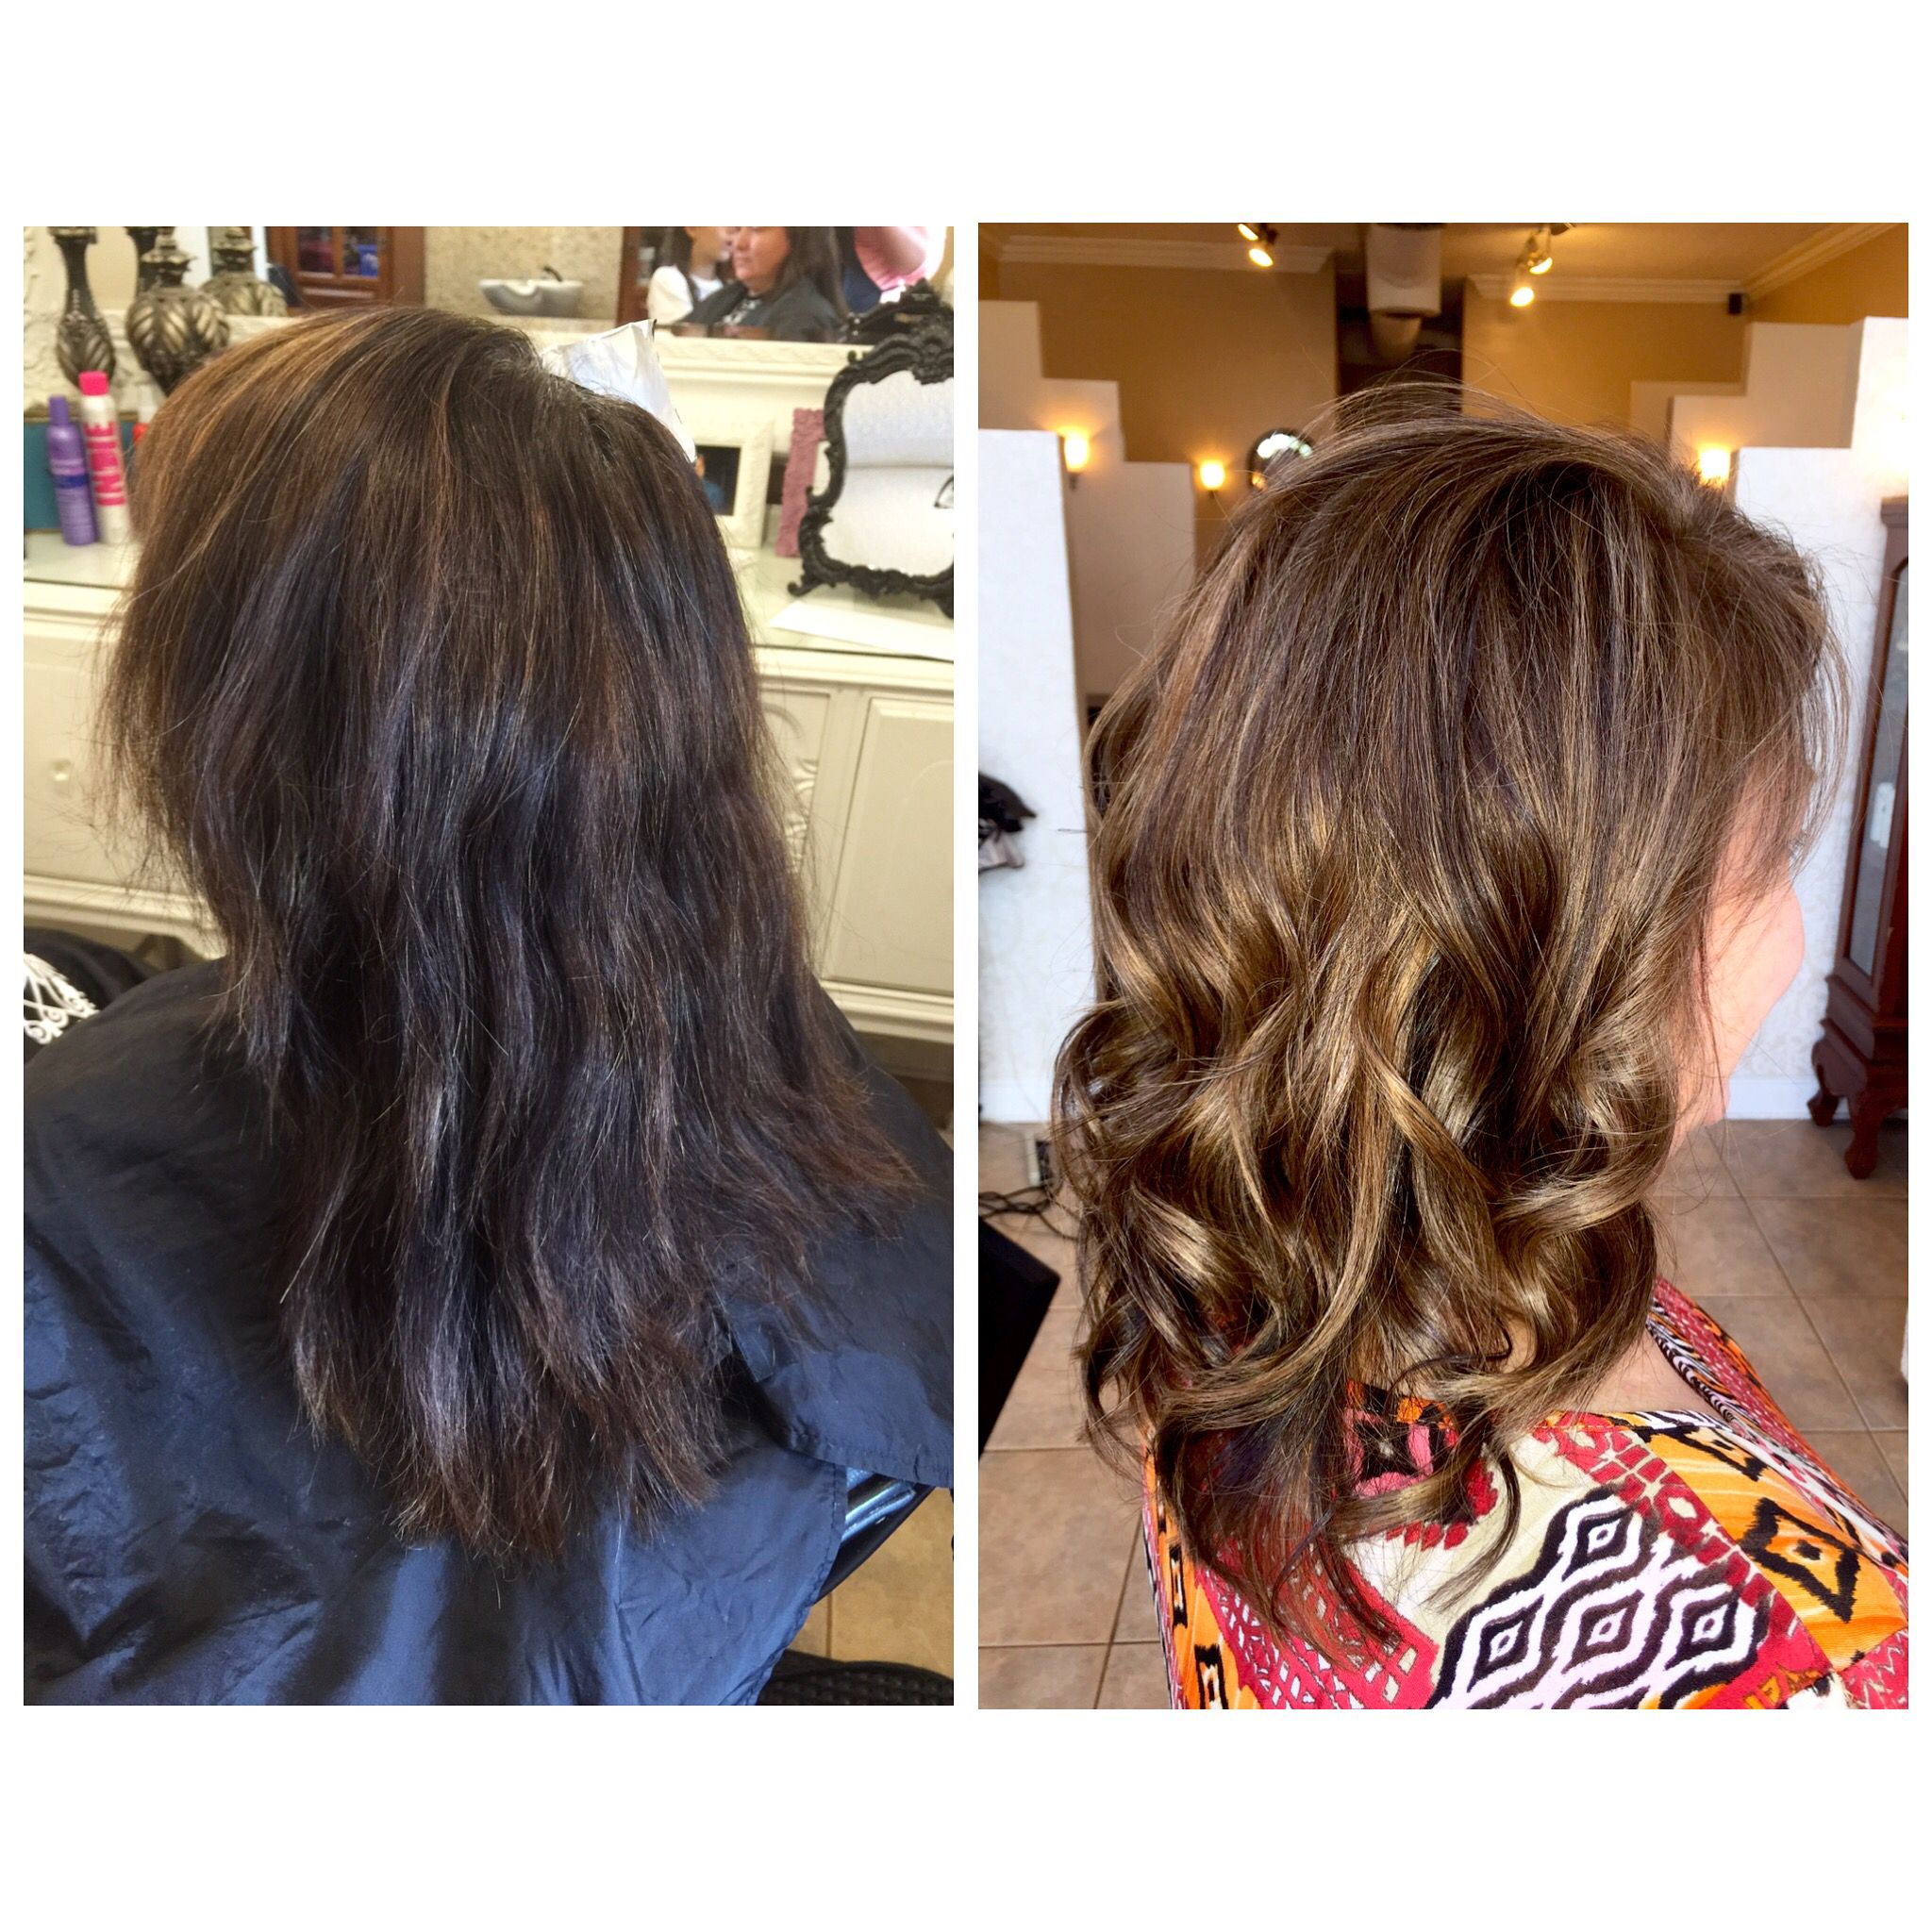 Pin on Styles and Color by Brittany